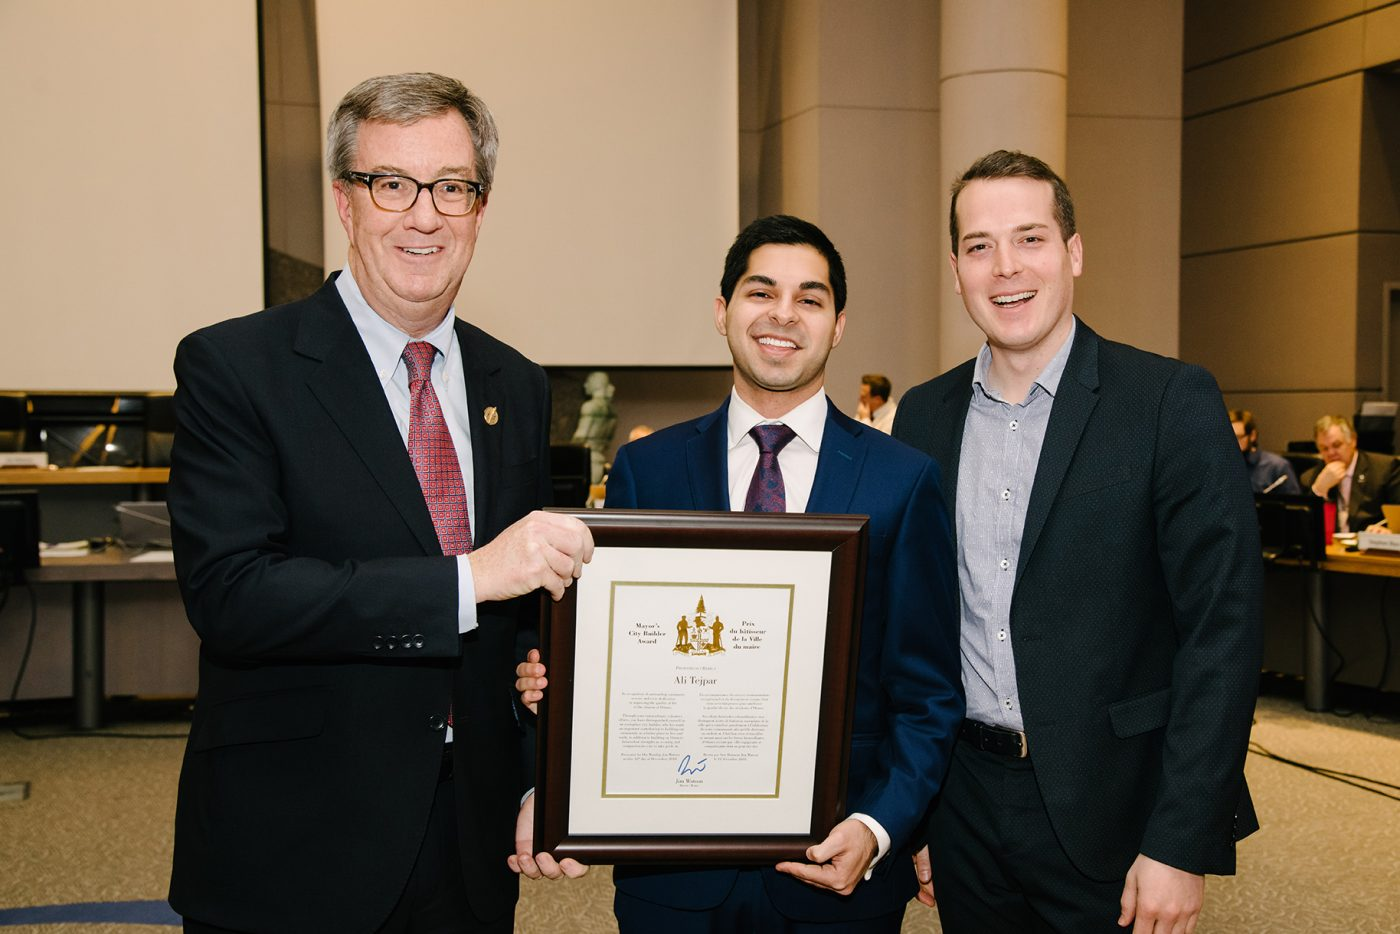 Ali Tejpar holds a certificate with Jim Watson and Mathieu Fleury on either side of him.